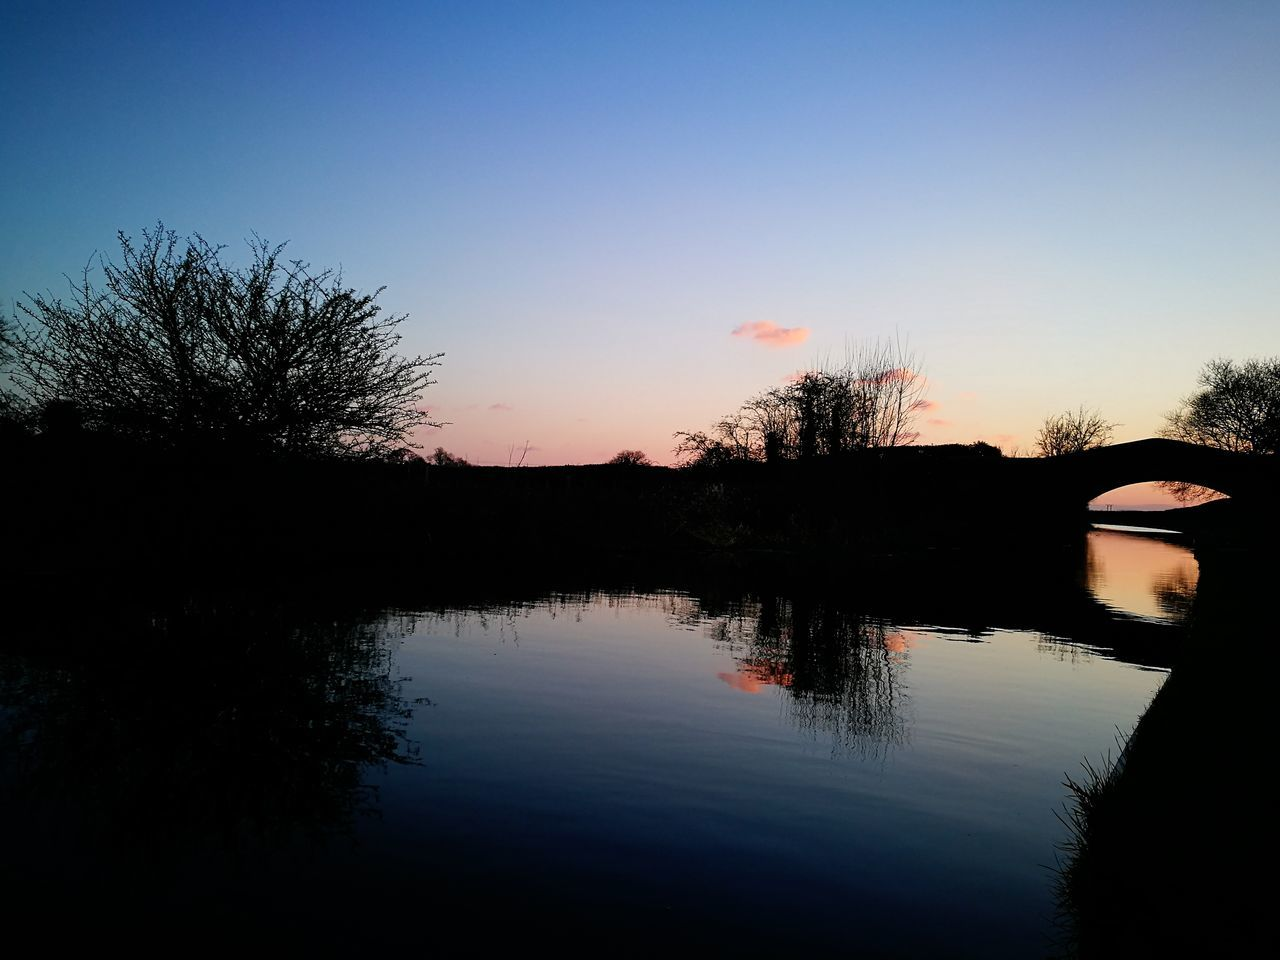 Canal Bridge Water Sunset Reflection Twilight Silhouette Wolverhampton Outdoors Sky Travel No People EyeEmNewHere Tranquility Tranquil Peaceful Relaxing